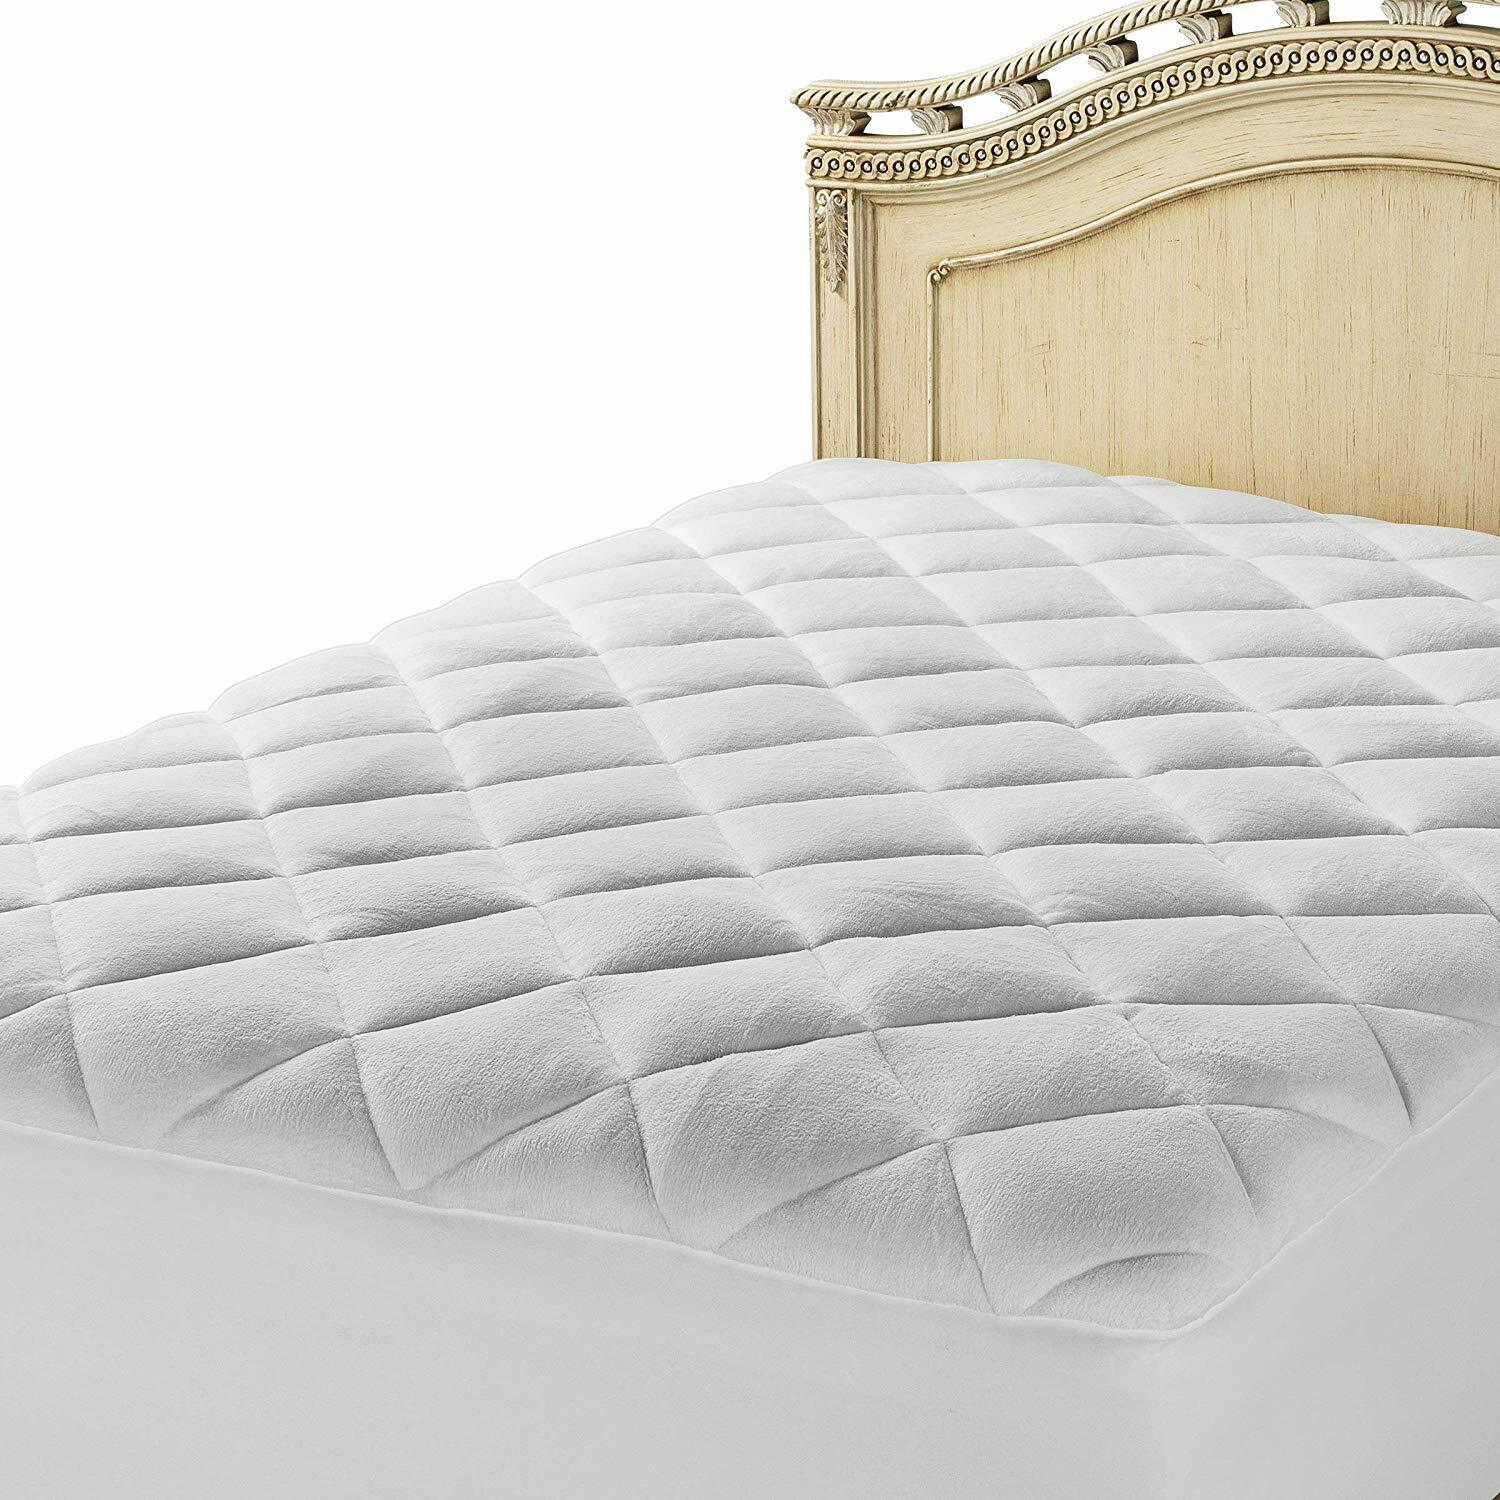 Mastertex Down Alternative Mattress Pad Cover, Double Puff Q